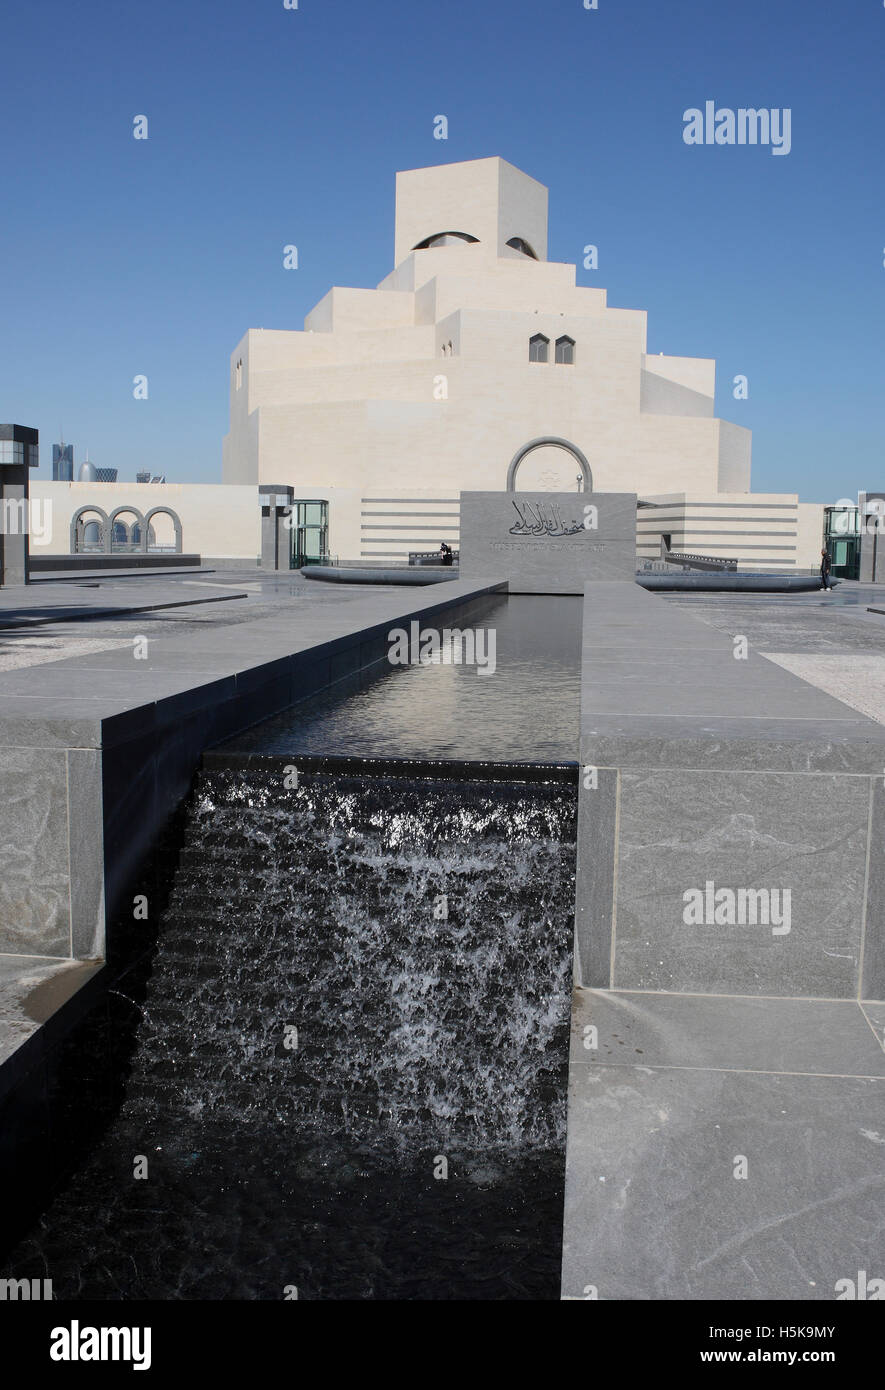 Museum of Islamic Art, MIA, Doha, Qatar, Middle East - Stock Image